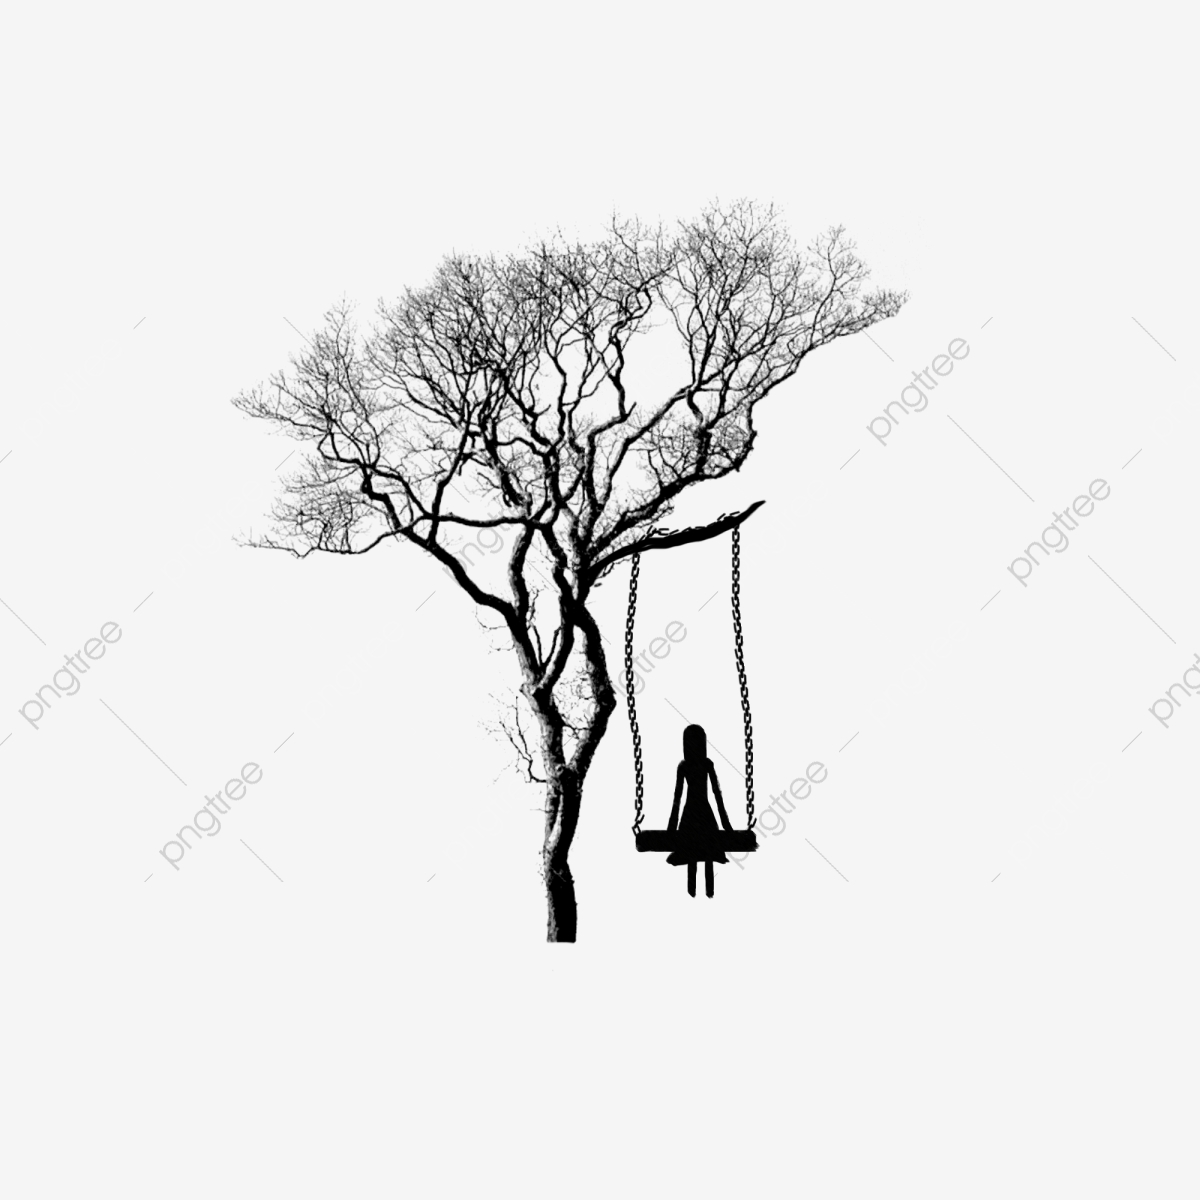 Black Tree Man Silhouette Cartoon Design Material Black Cartoon Tree Png Transparent Image And Clipart For Free Download Black and white trees clip art. https pngtree com freepng black tree man silhouette cartoon design material 4077673 html